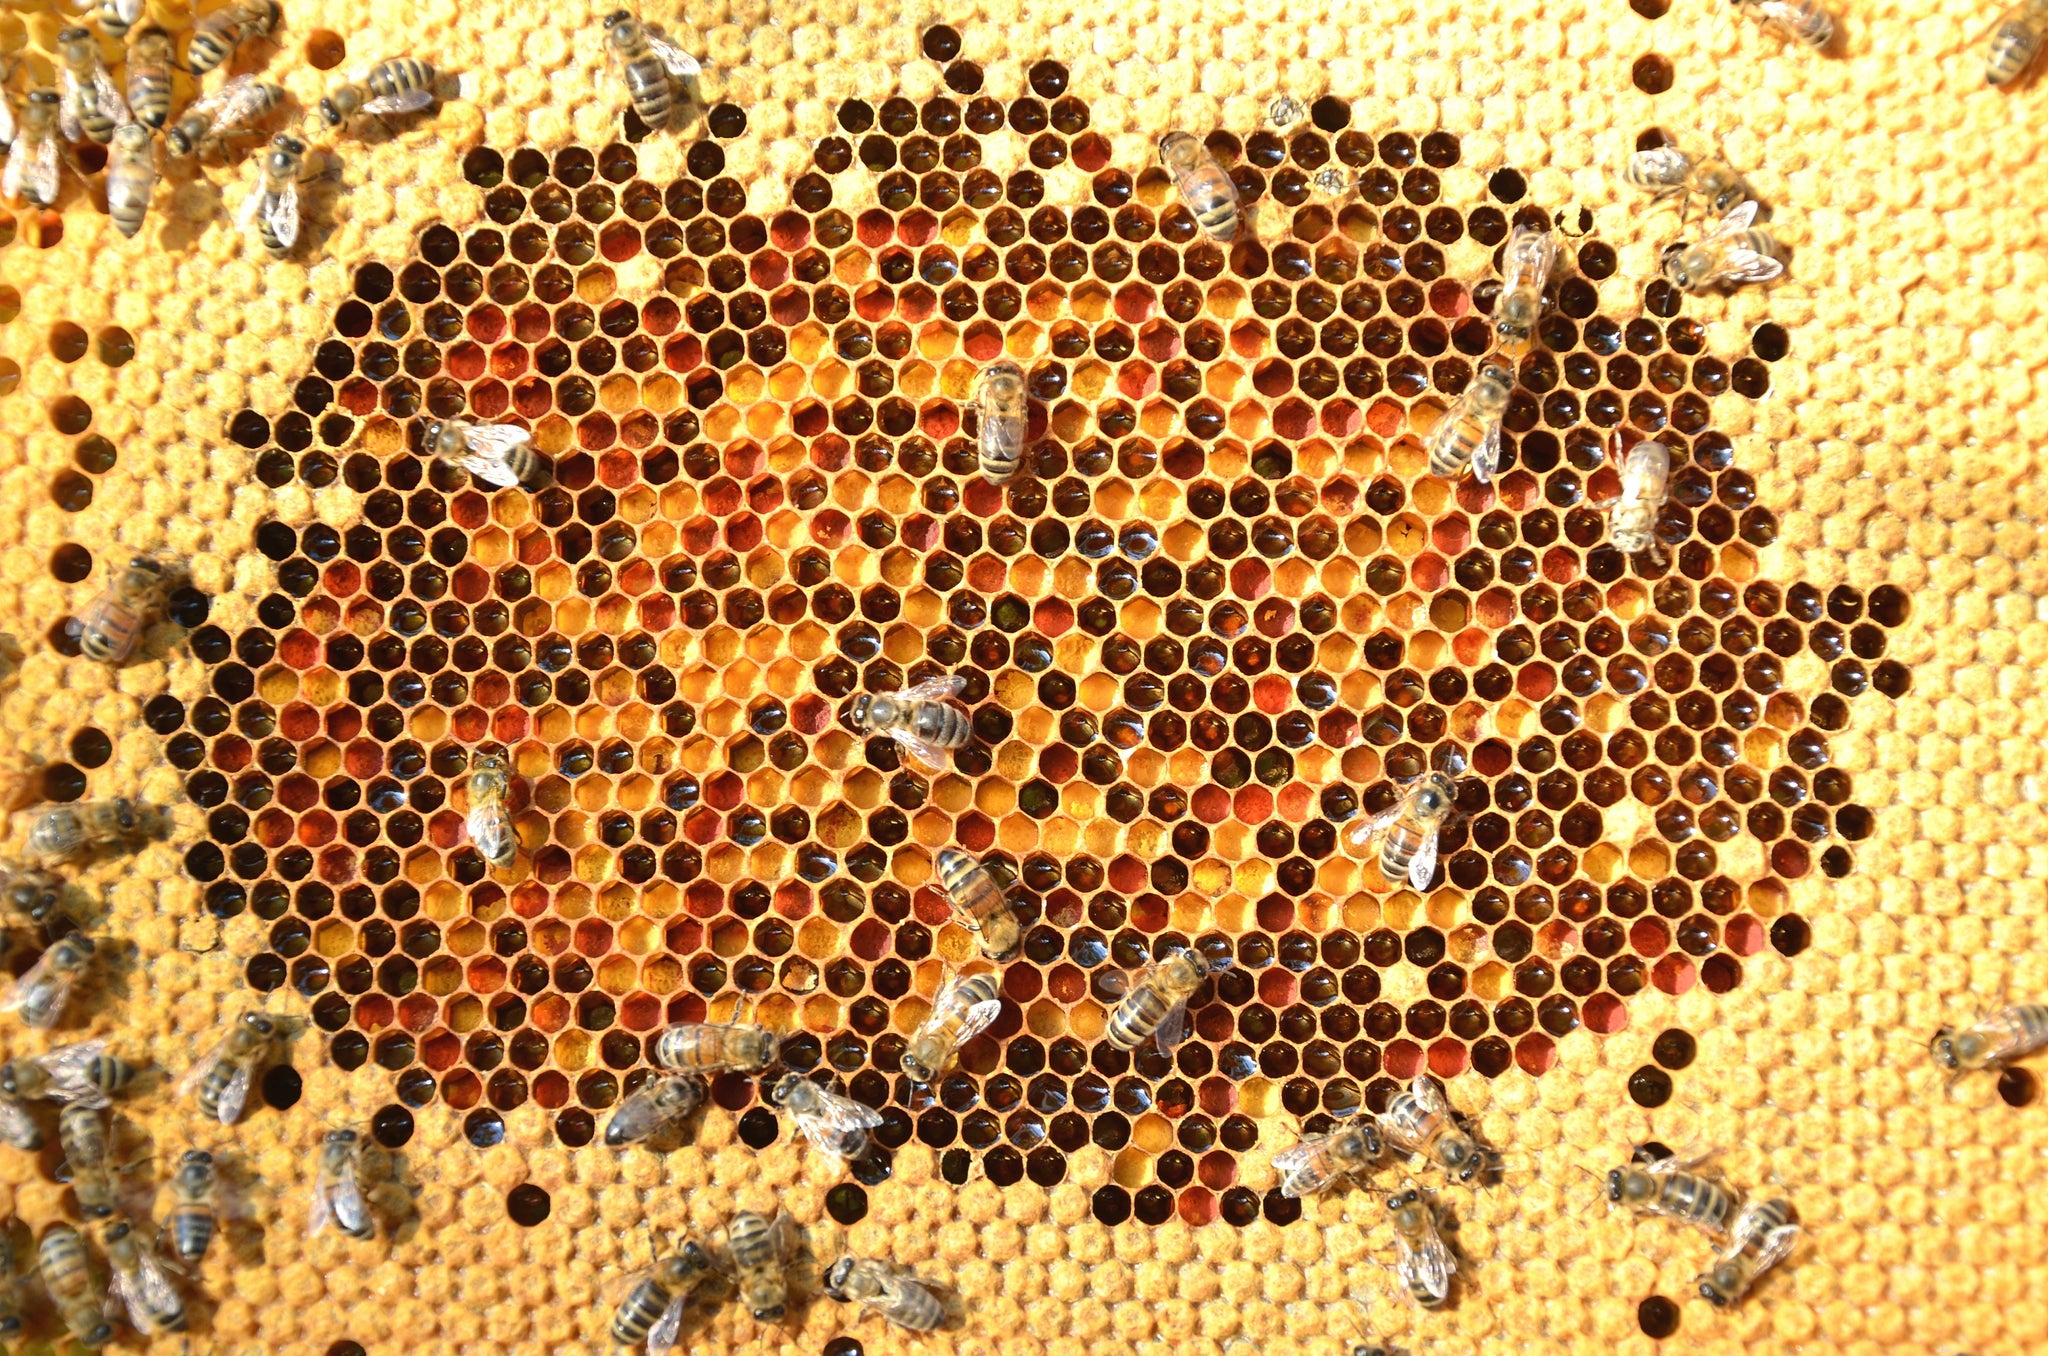 Bees making honey beeswax comb